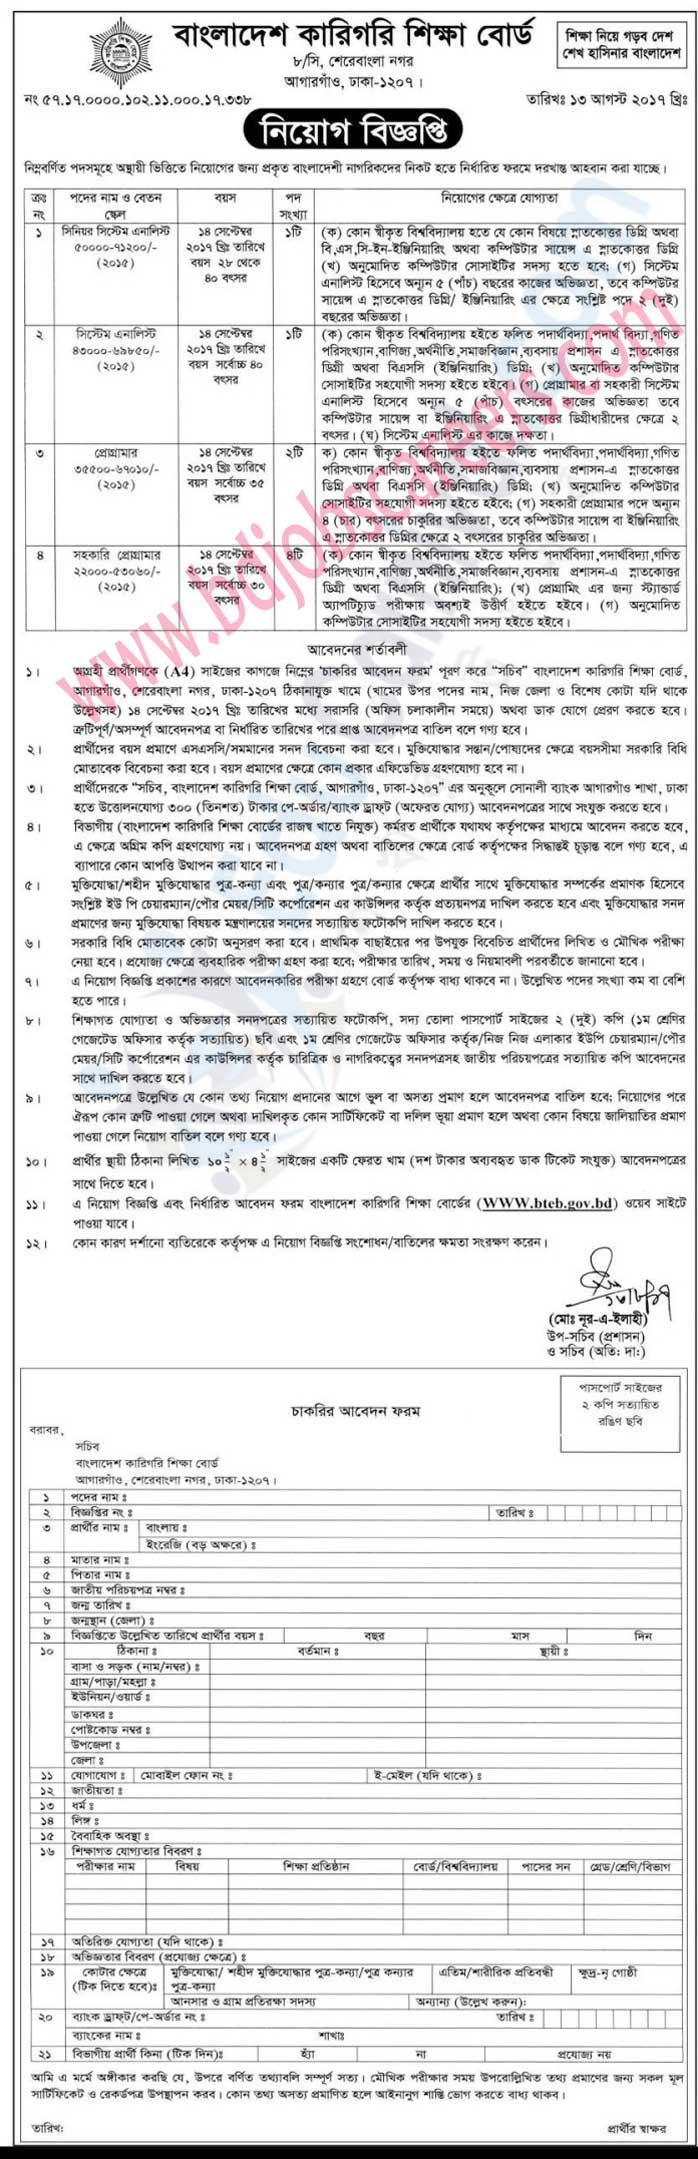 a look at technical education in bangladesh Bangladesh technical education board (bteb) was founded to promote technical and vocational education in bangladesh the activities of this board include prescribe the courses of instruction, development of learning materials, grant or with-draw the affiliation to the concerned institutions, control and giving student registration, grant.